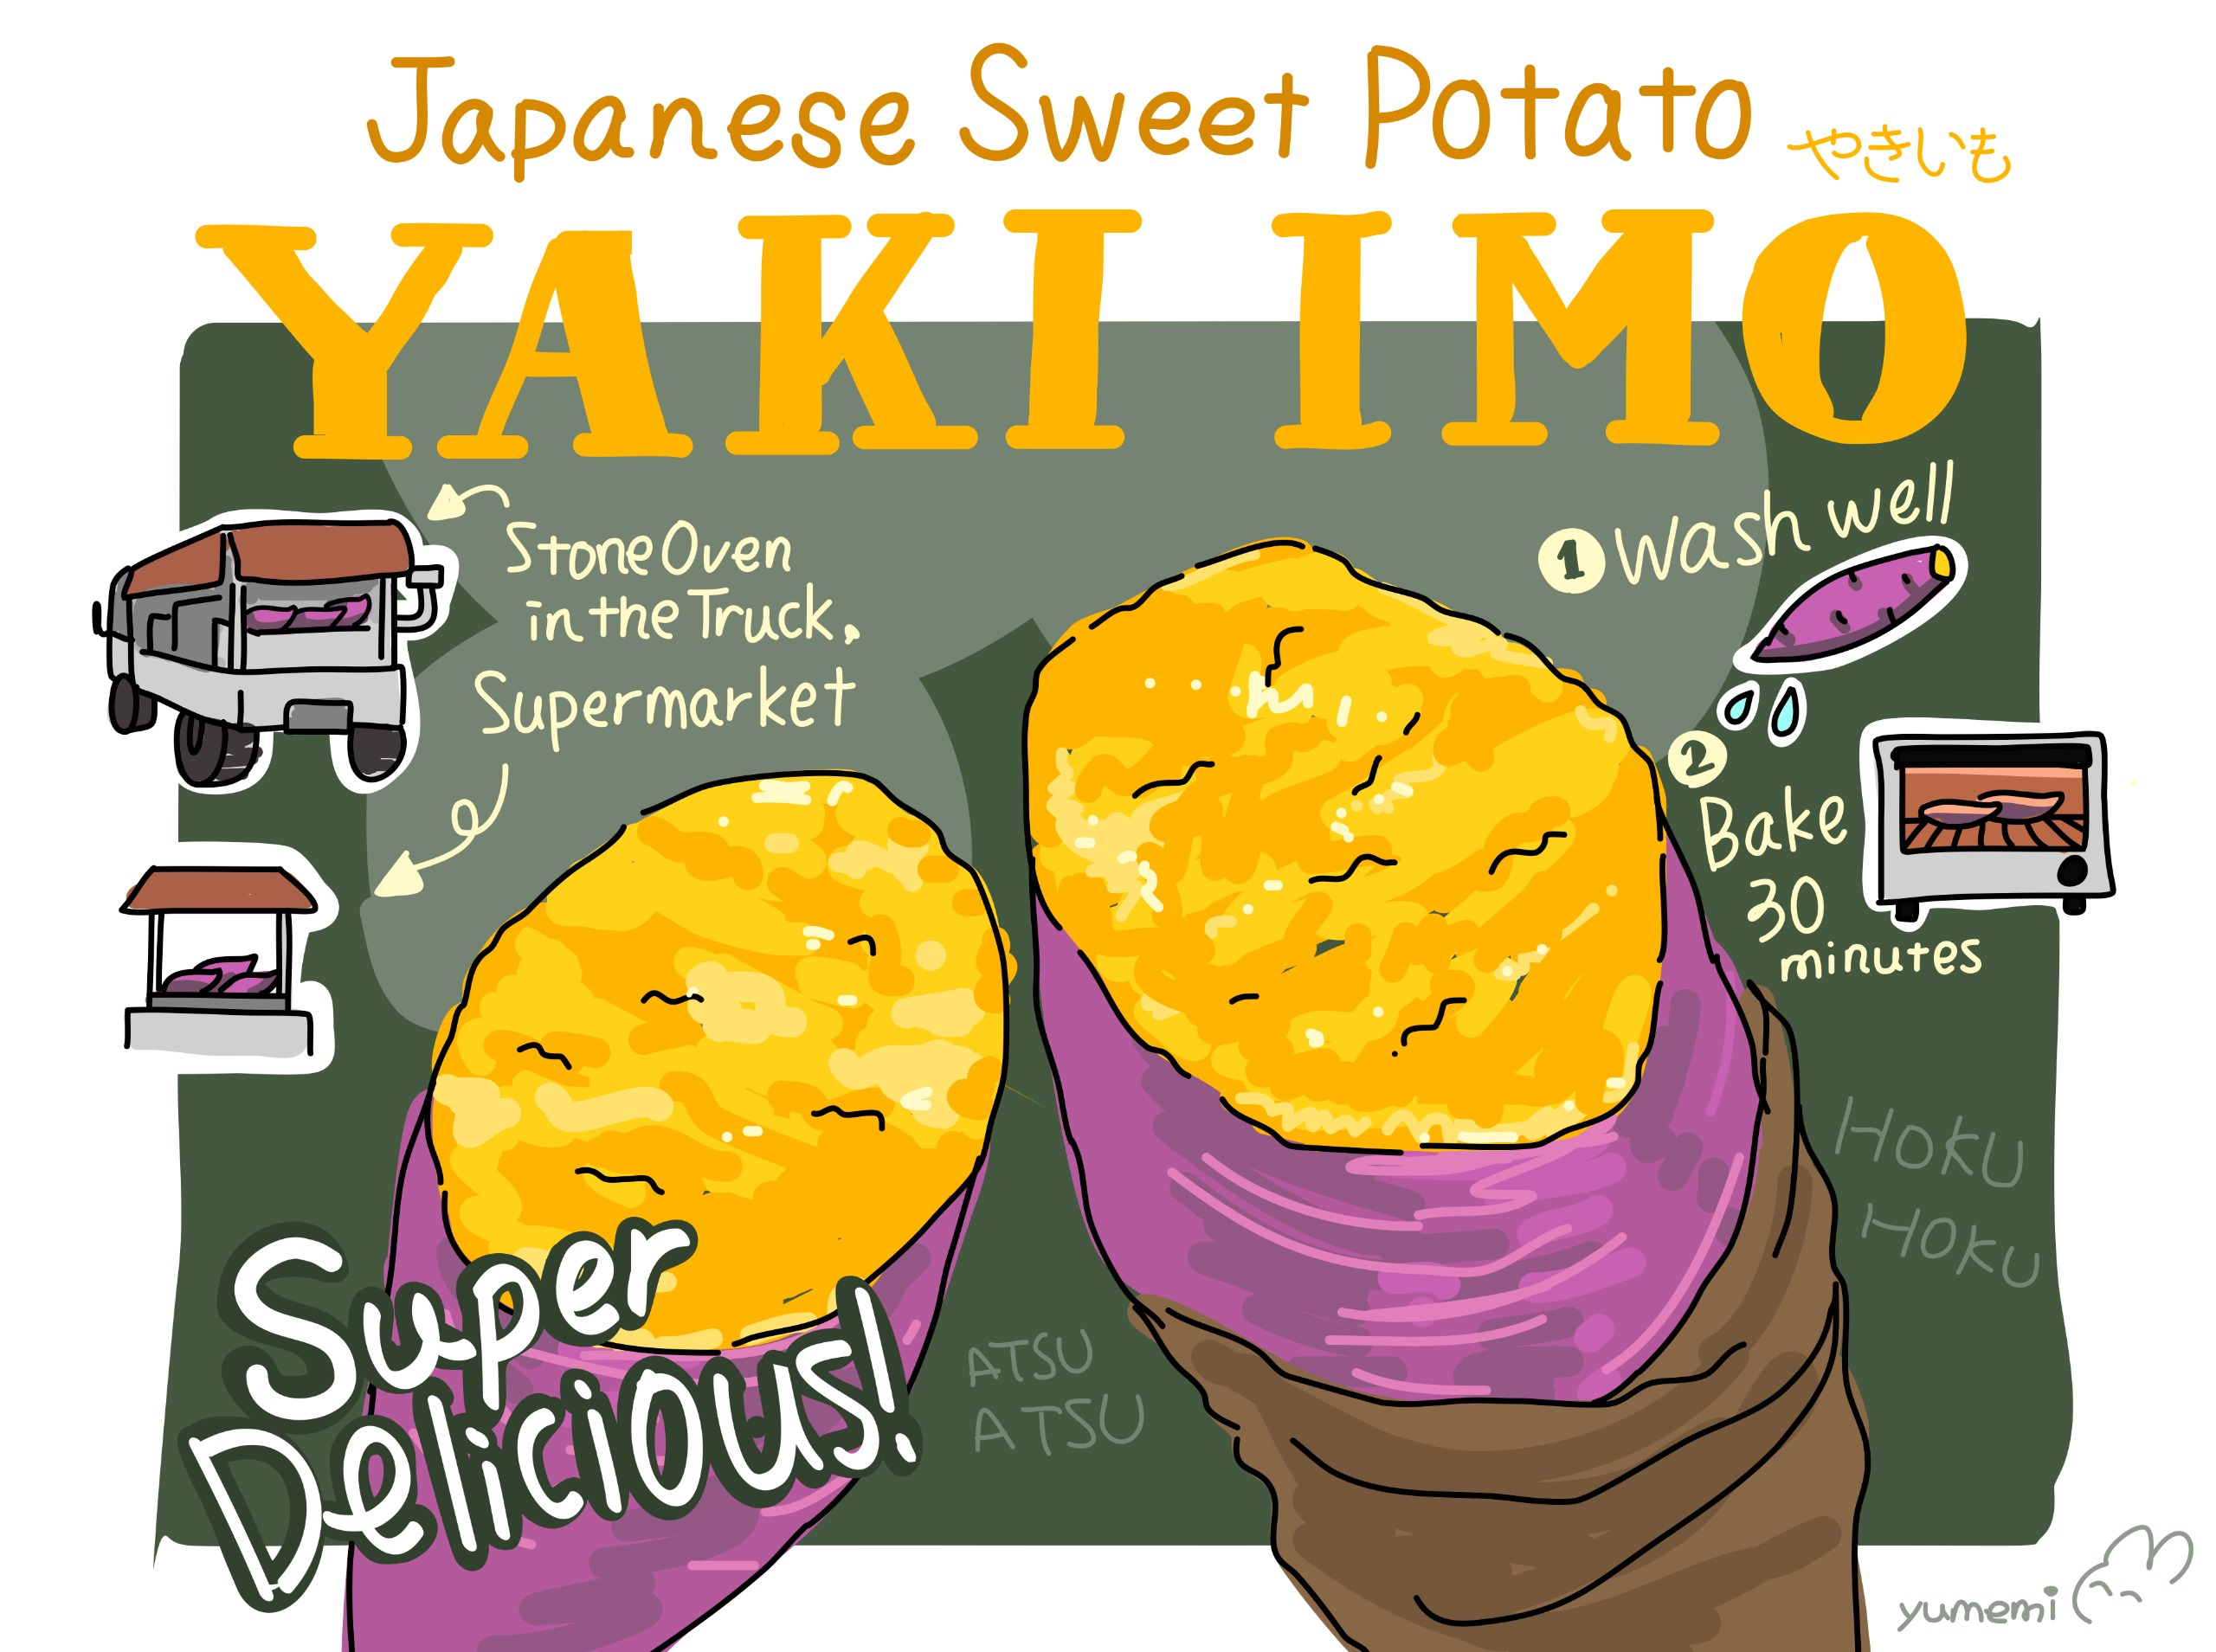 YAKI IMO – Japanese Sweet Potato! Image